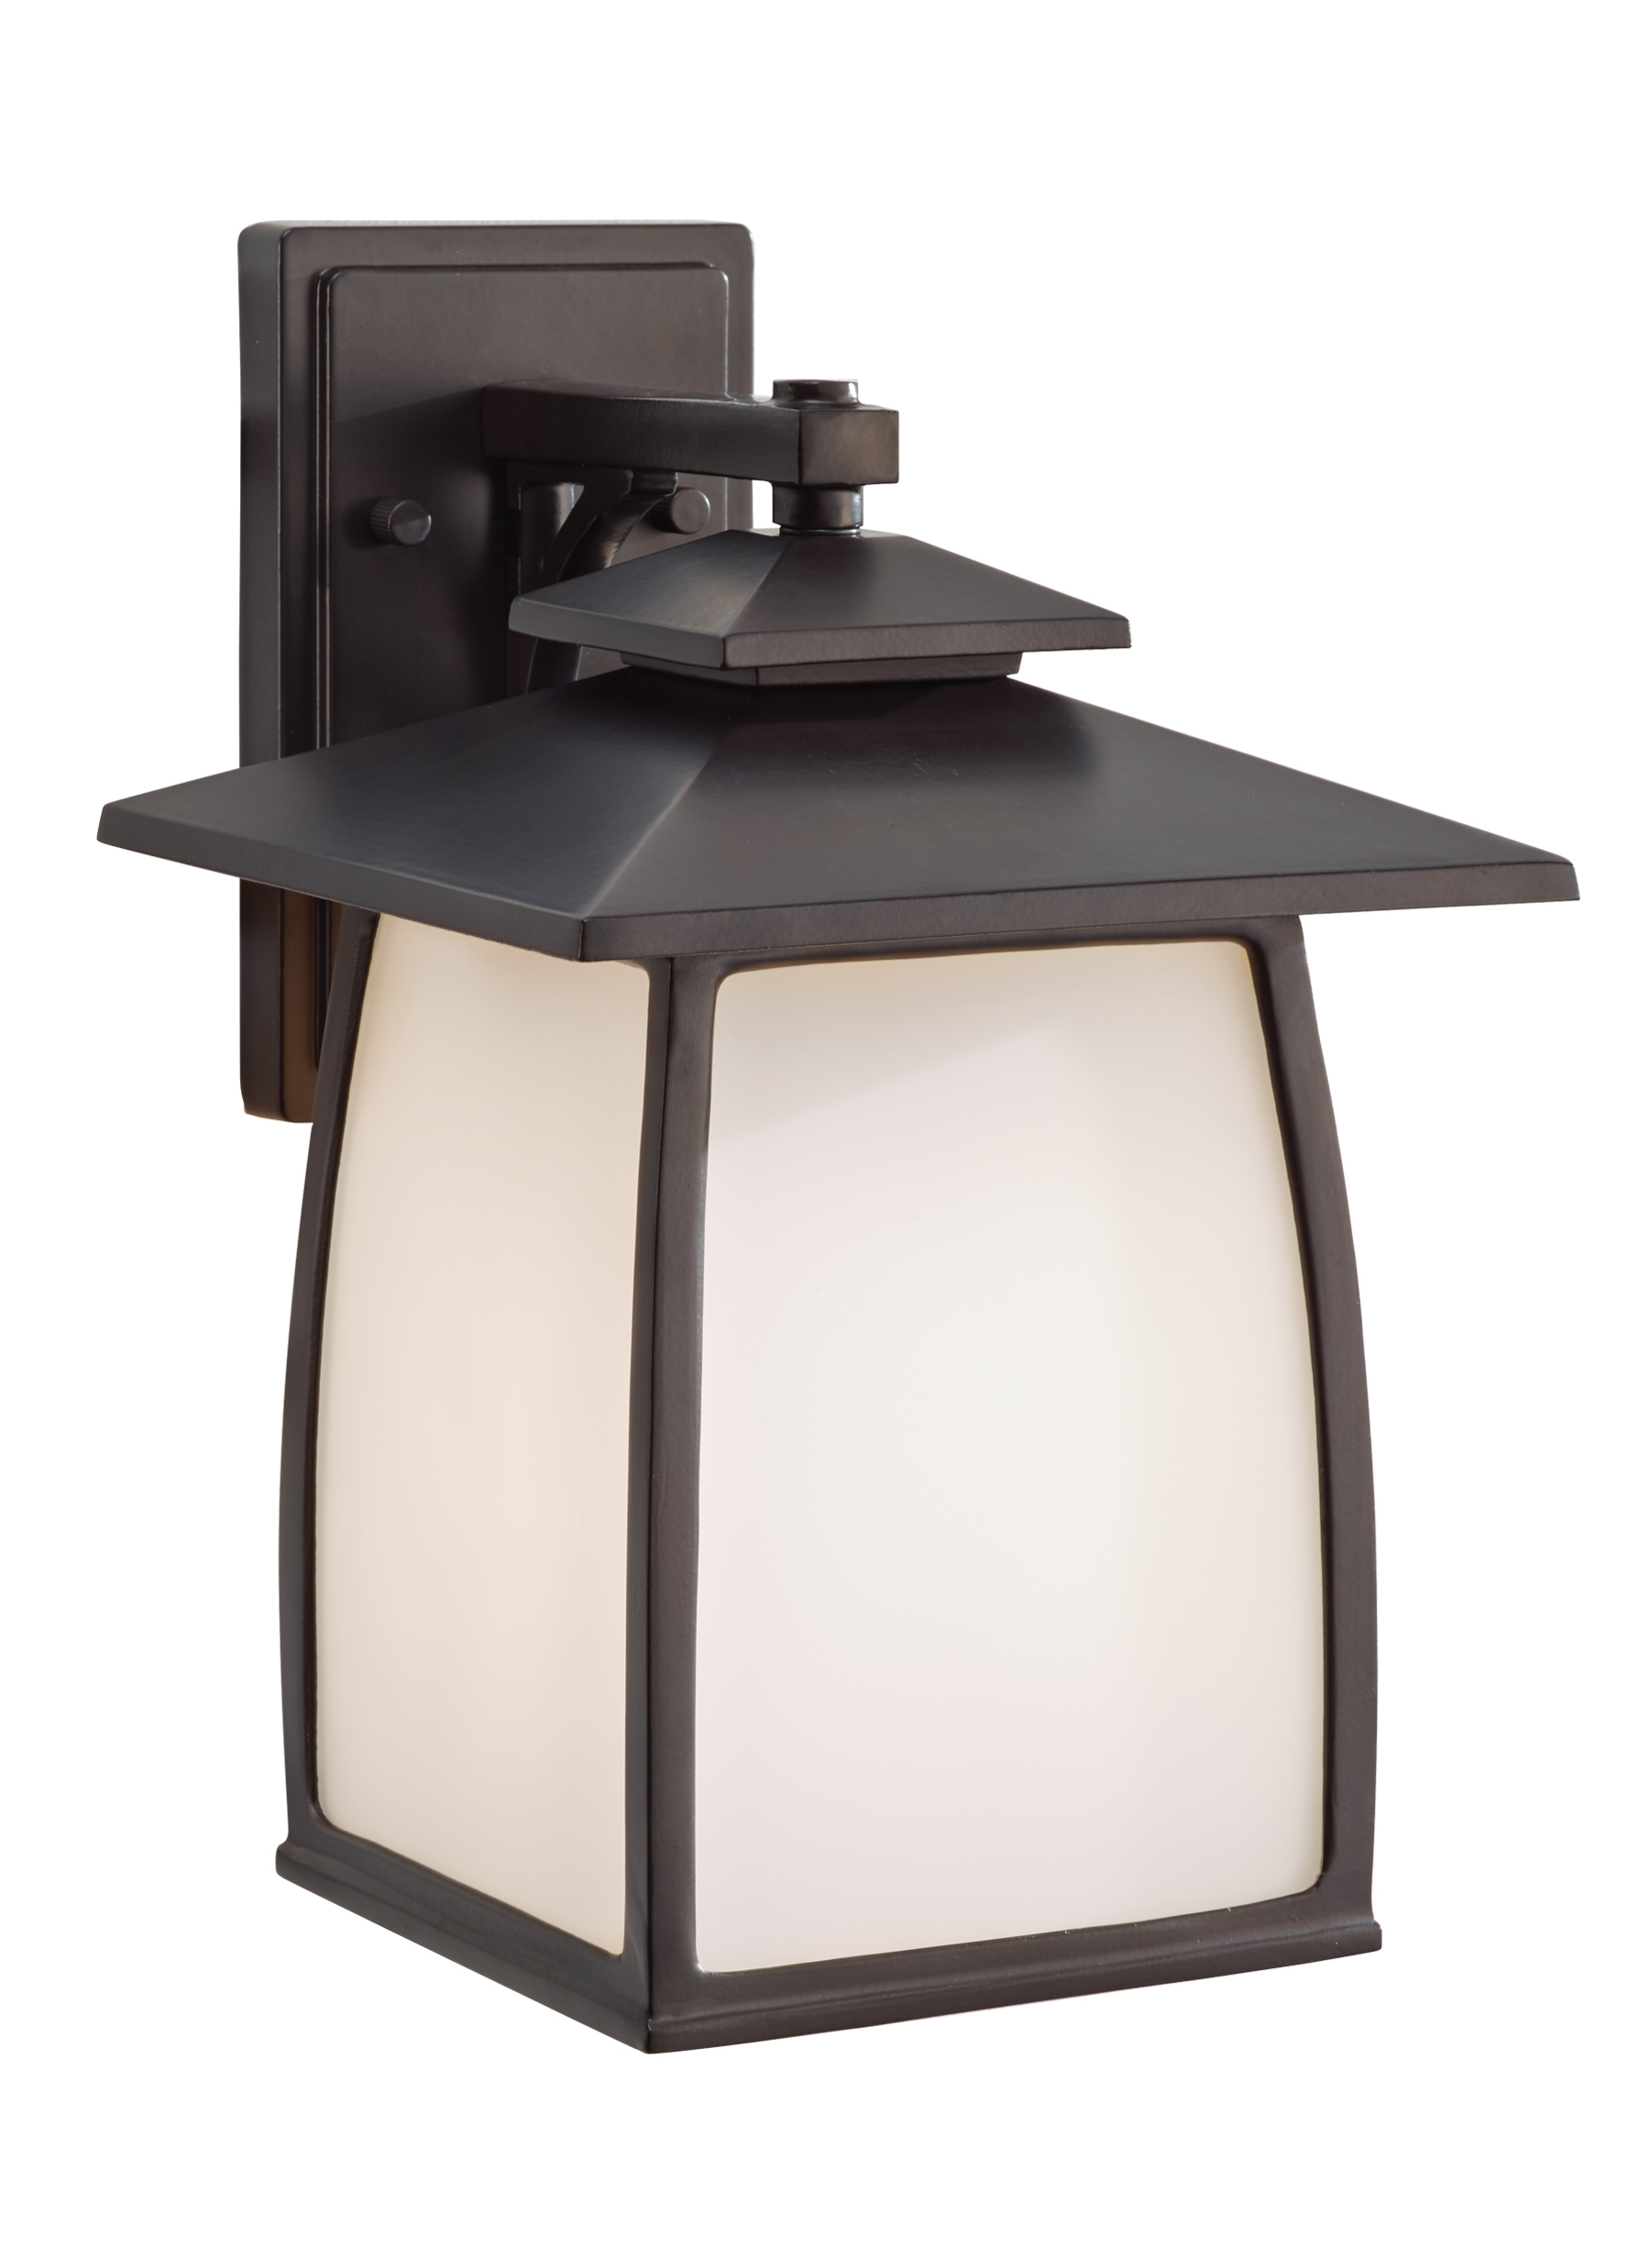 Favorite Ol8502orb,1 – Light Outdoor Lantern,oil Rubbed Bronze Regarding Outdoor Lanterns Without Glass (View 15 of 20)